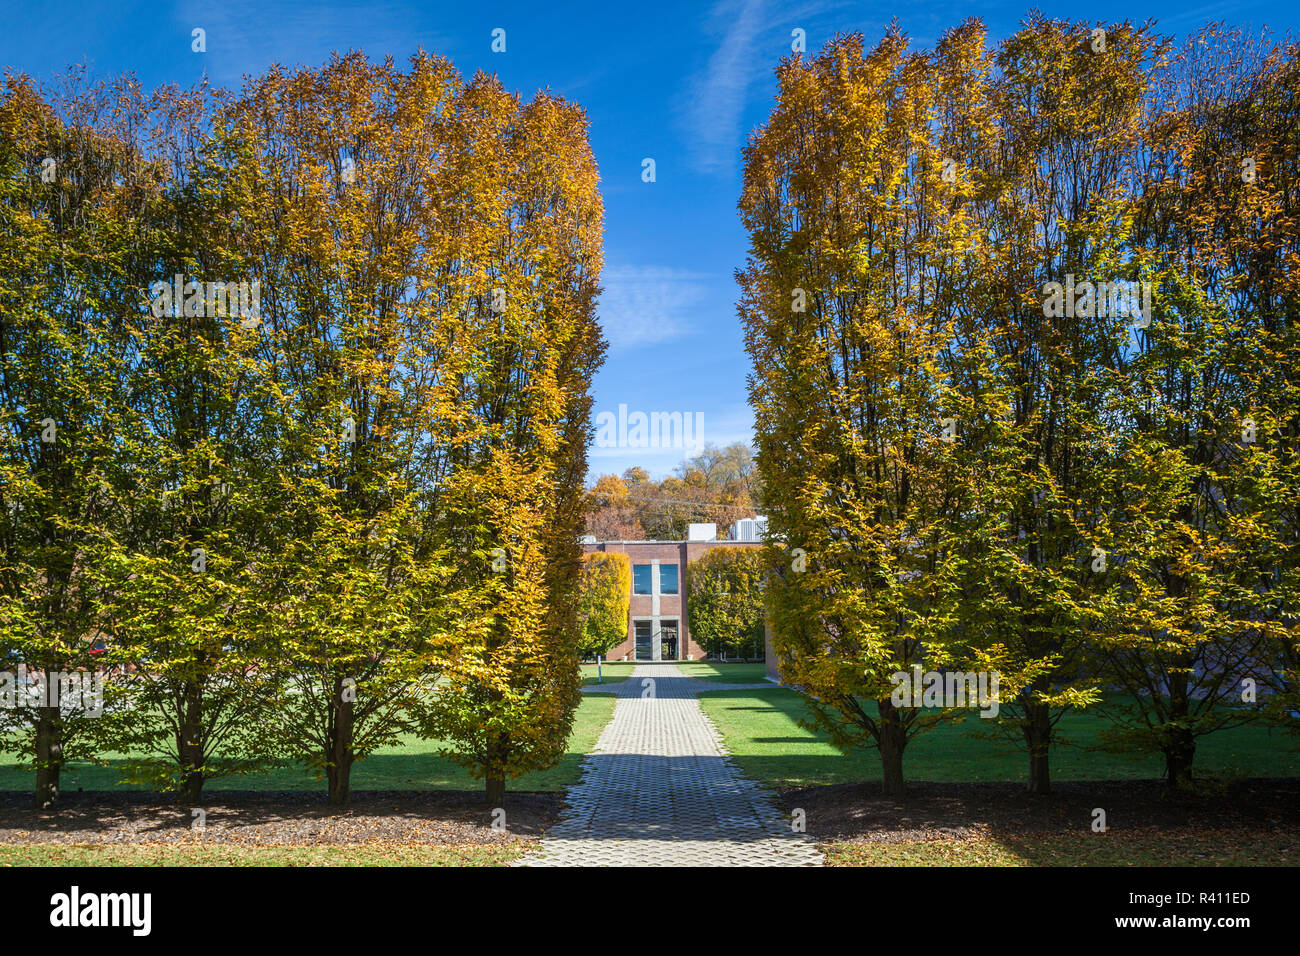 Riggio Stock Photos & Riggio Stock Images - Alamy